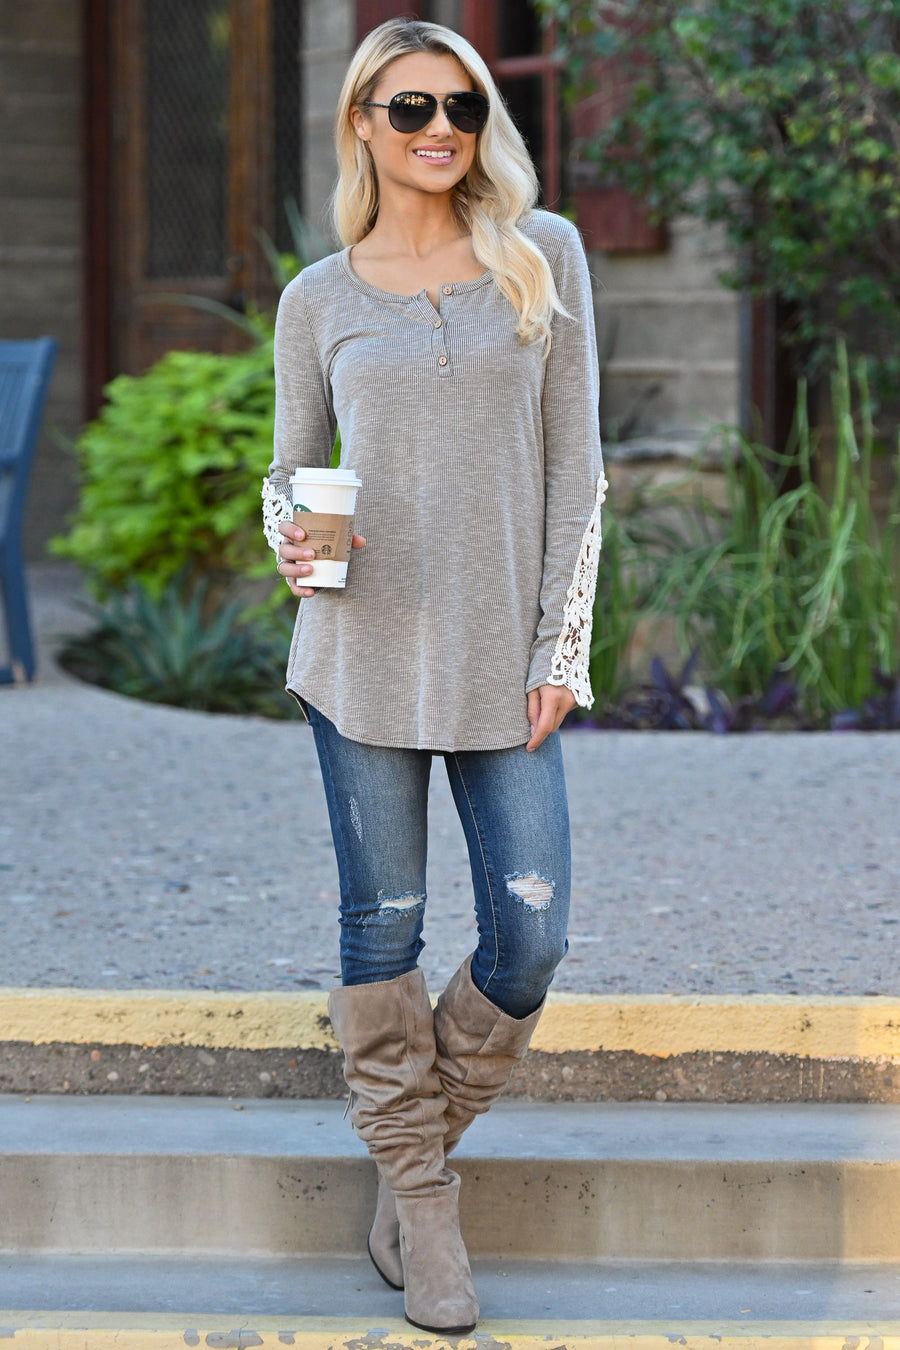 Just What I Need Knit Top - Taupe women's long sleeve ribbed top with crochet detail on sleeve, closet candy boutique 2